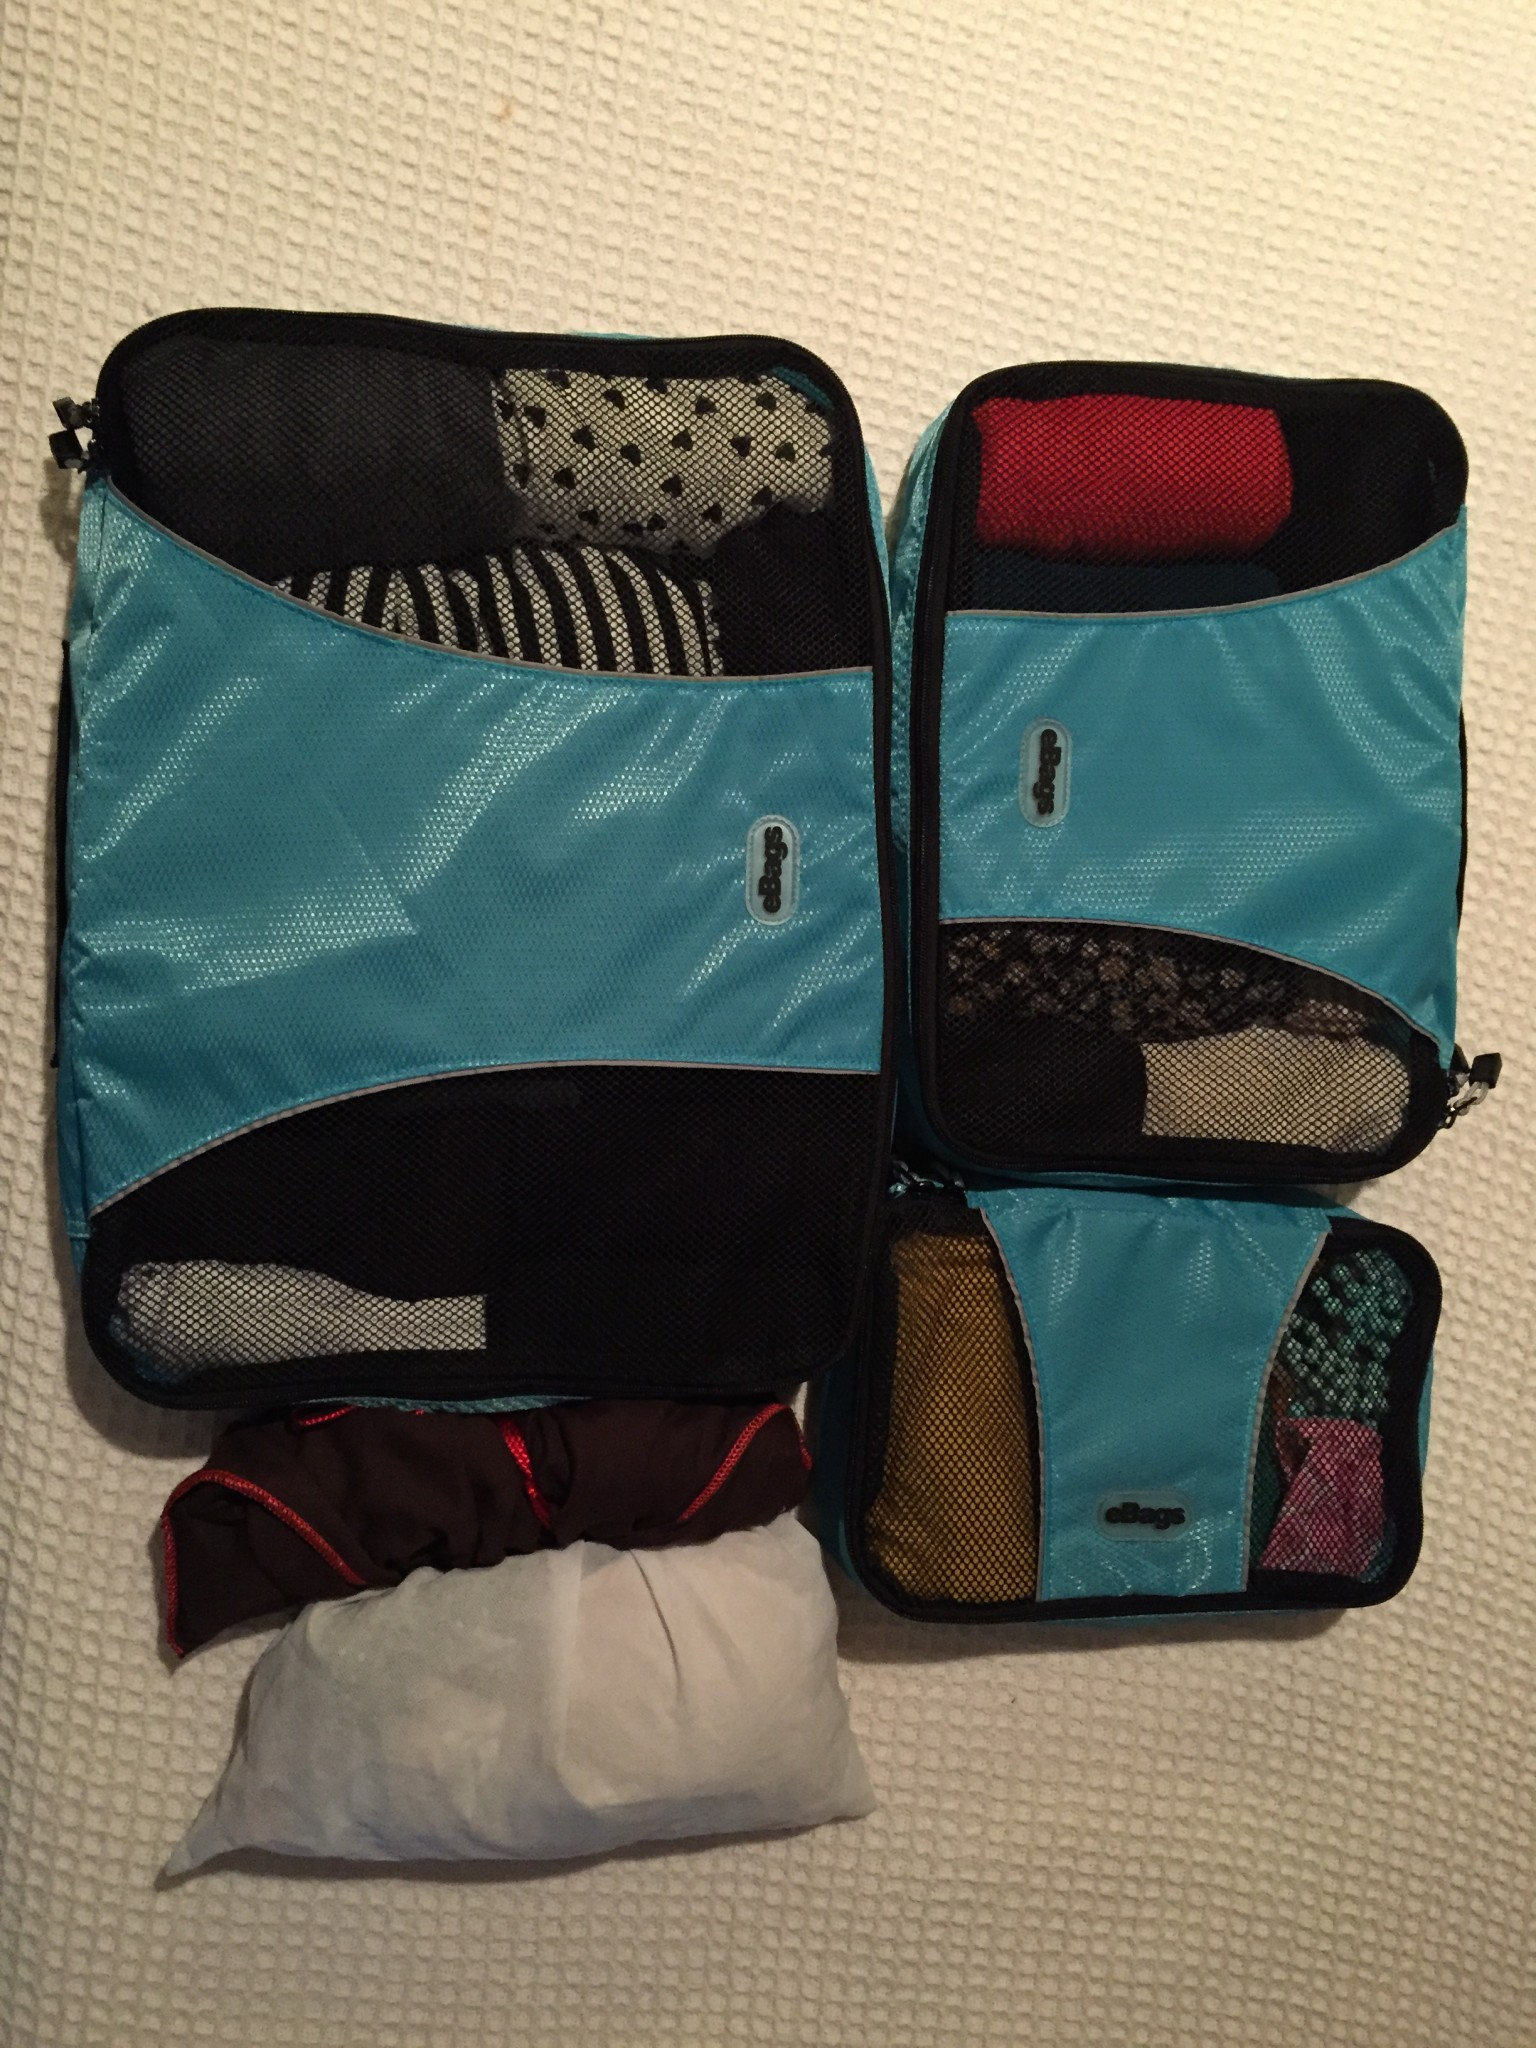 Packing cubes can hold a massive amount of clothes and keep everything incredibly organized. I also like to use small fabric bags to organize smaller things.